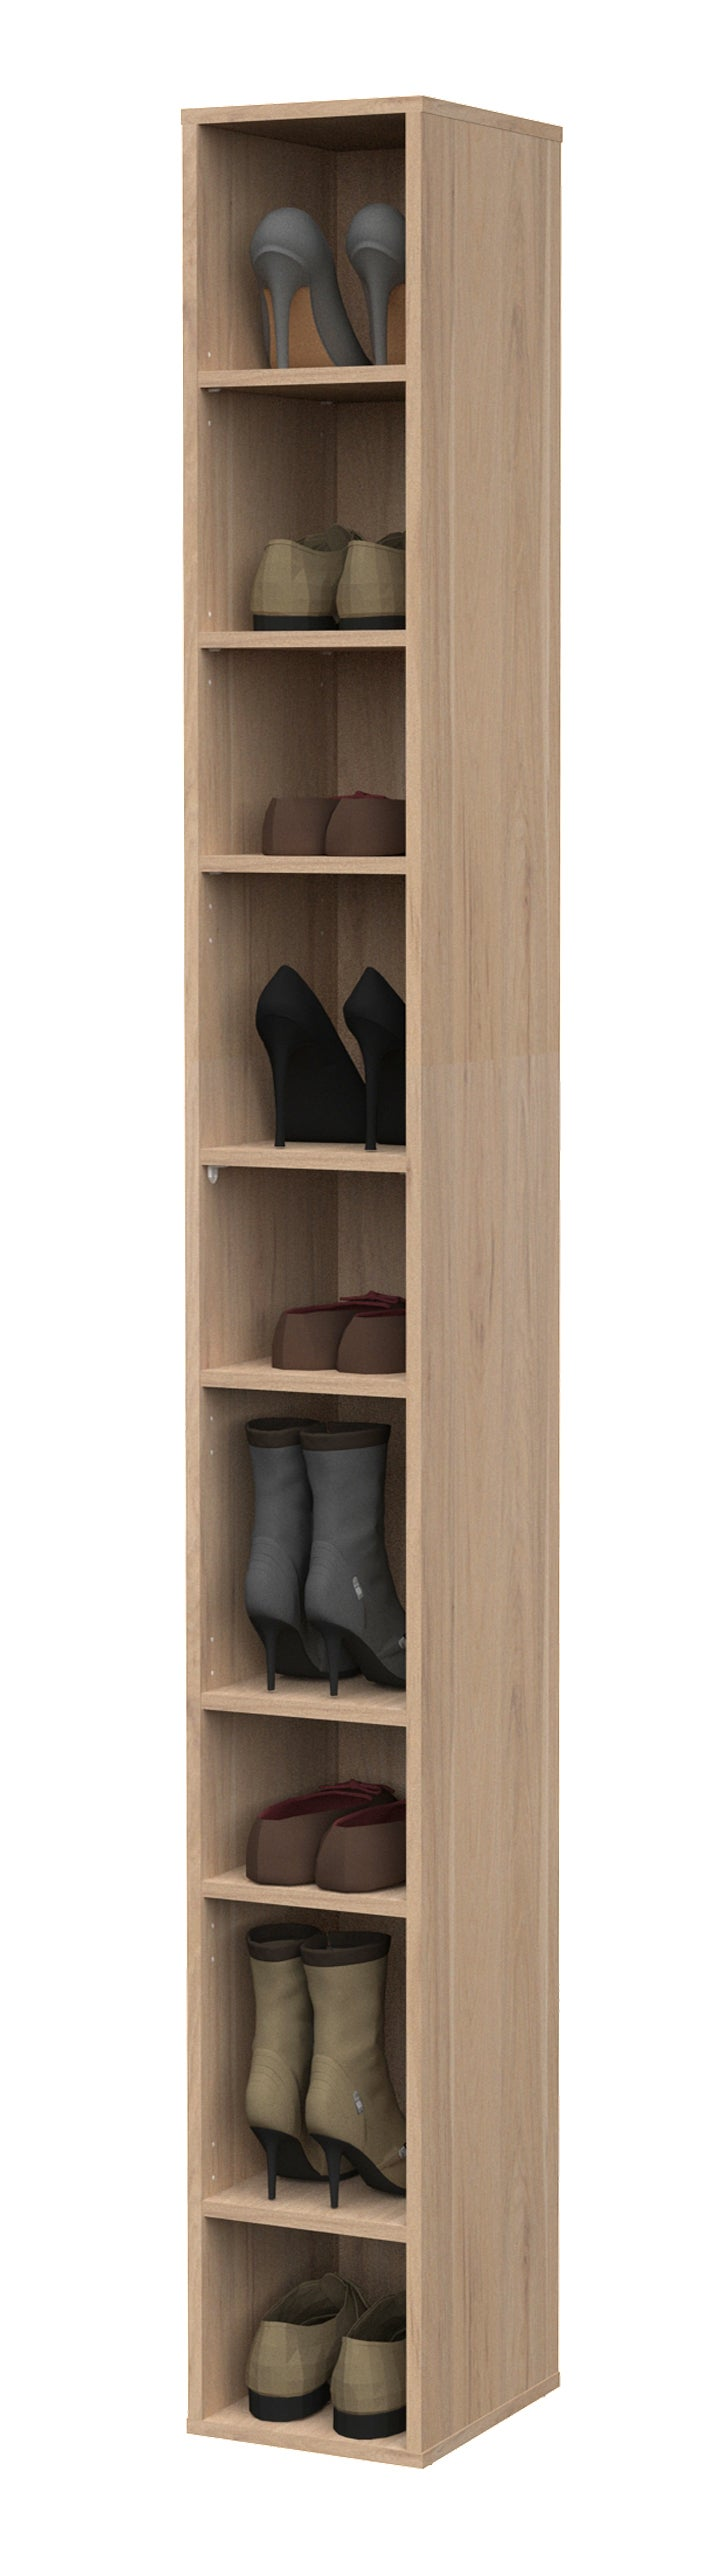 Armoire Chaussure Leroy Merlin